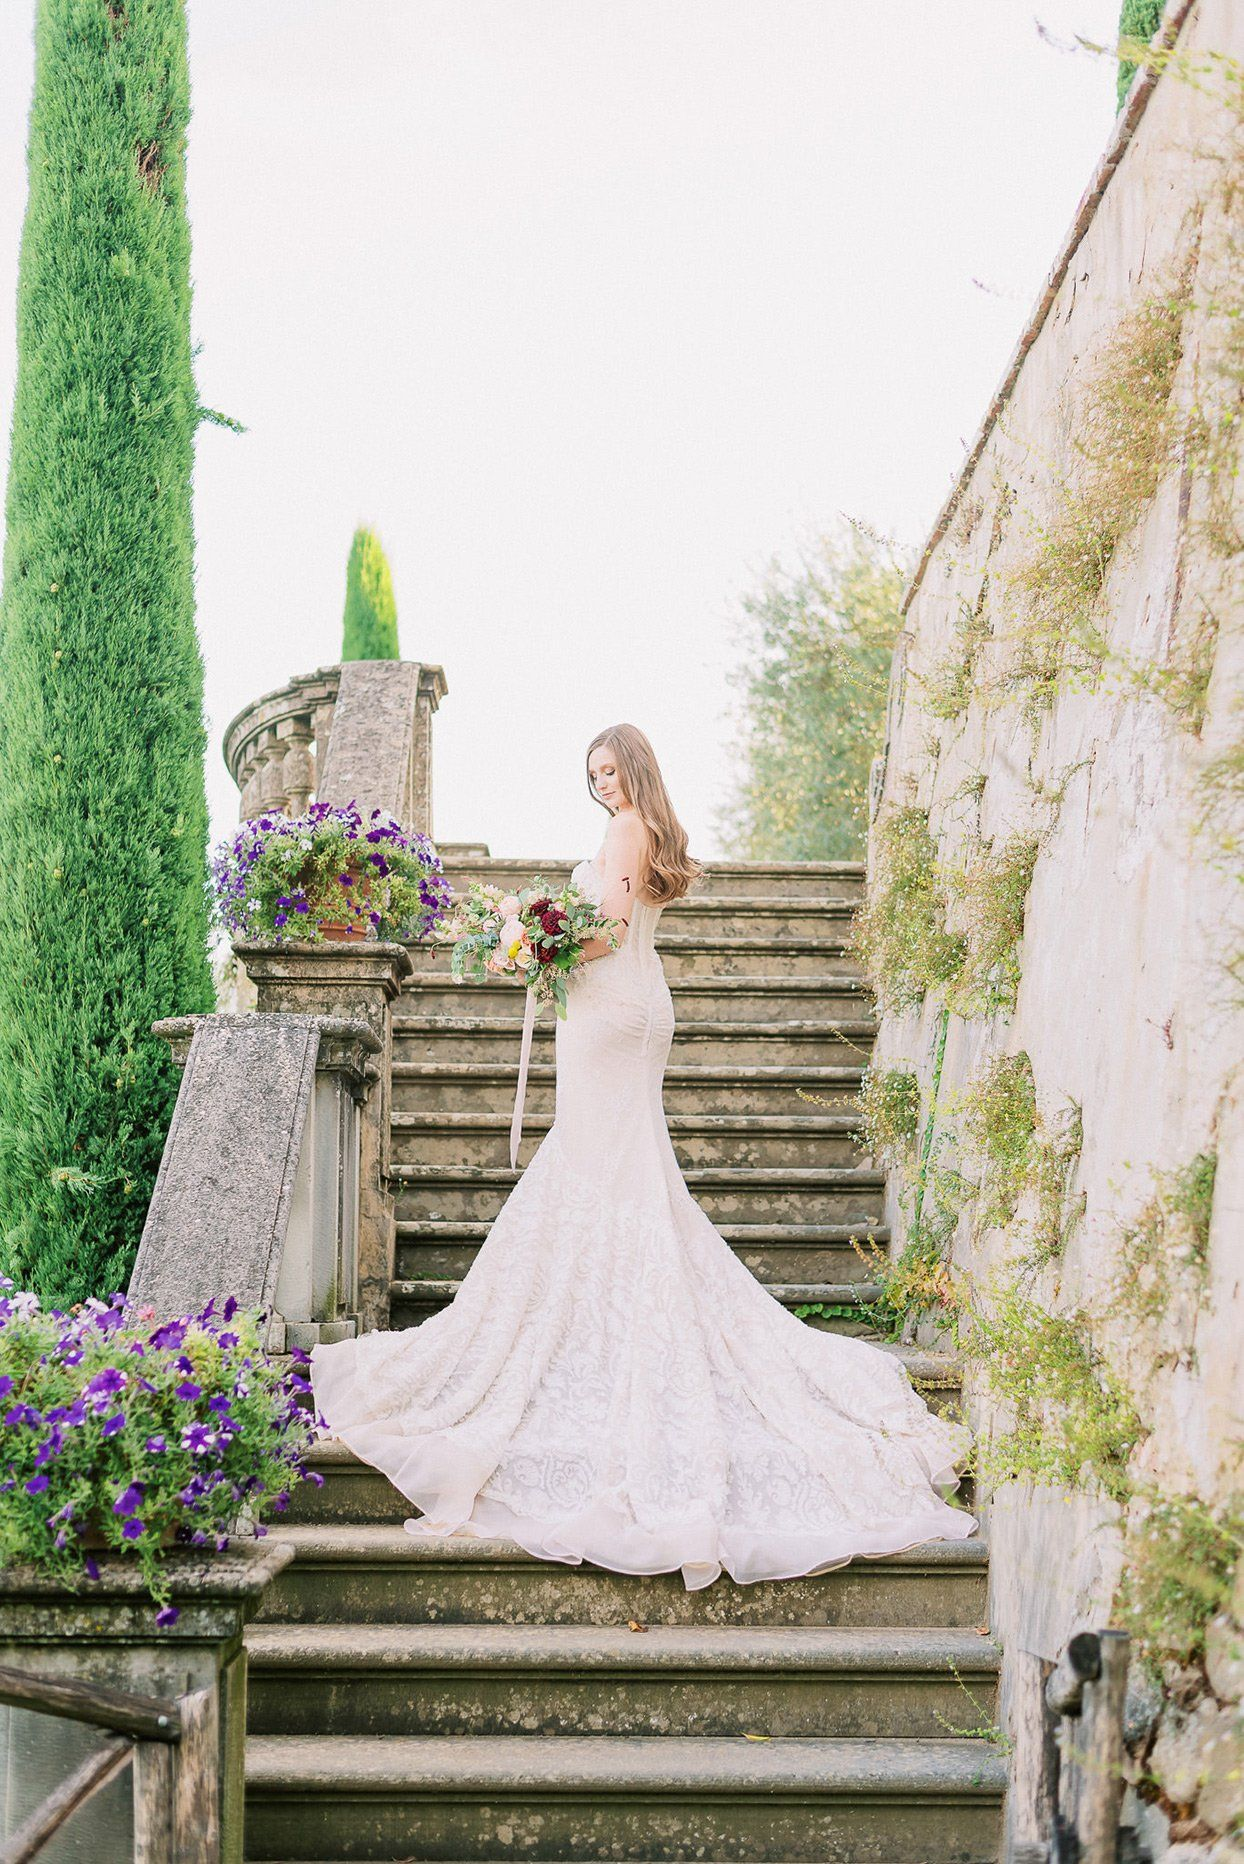 This Couple Tied The Knot At Sting S 16th Century Villa In Tuscany In 2020 Tuscany Wedding Italy Wedding Tuscany Wedding Venue